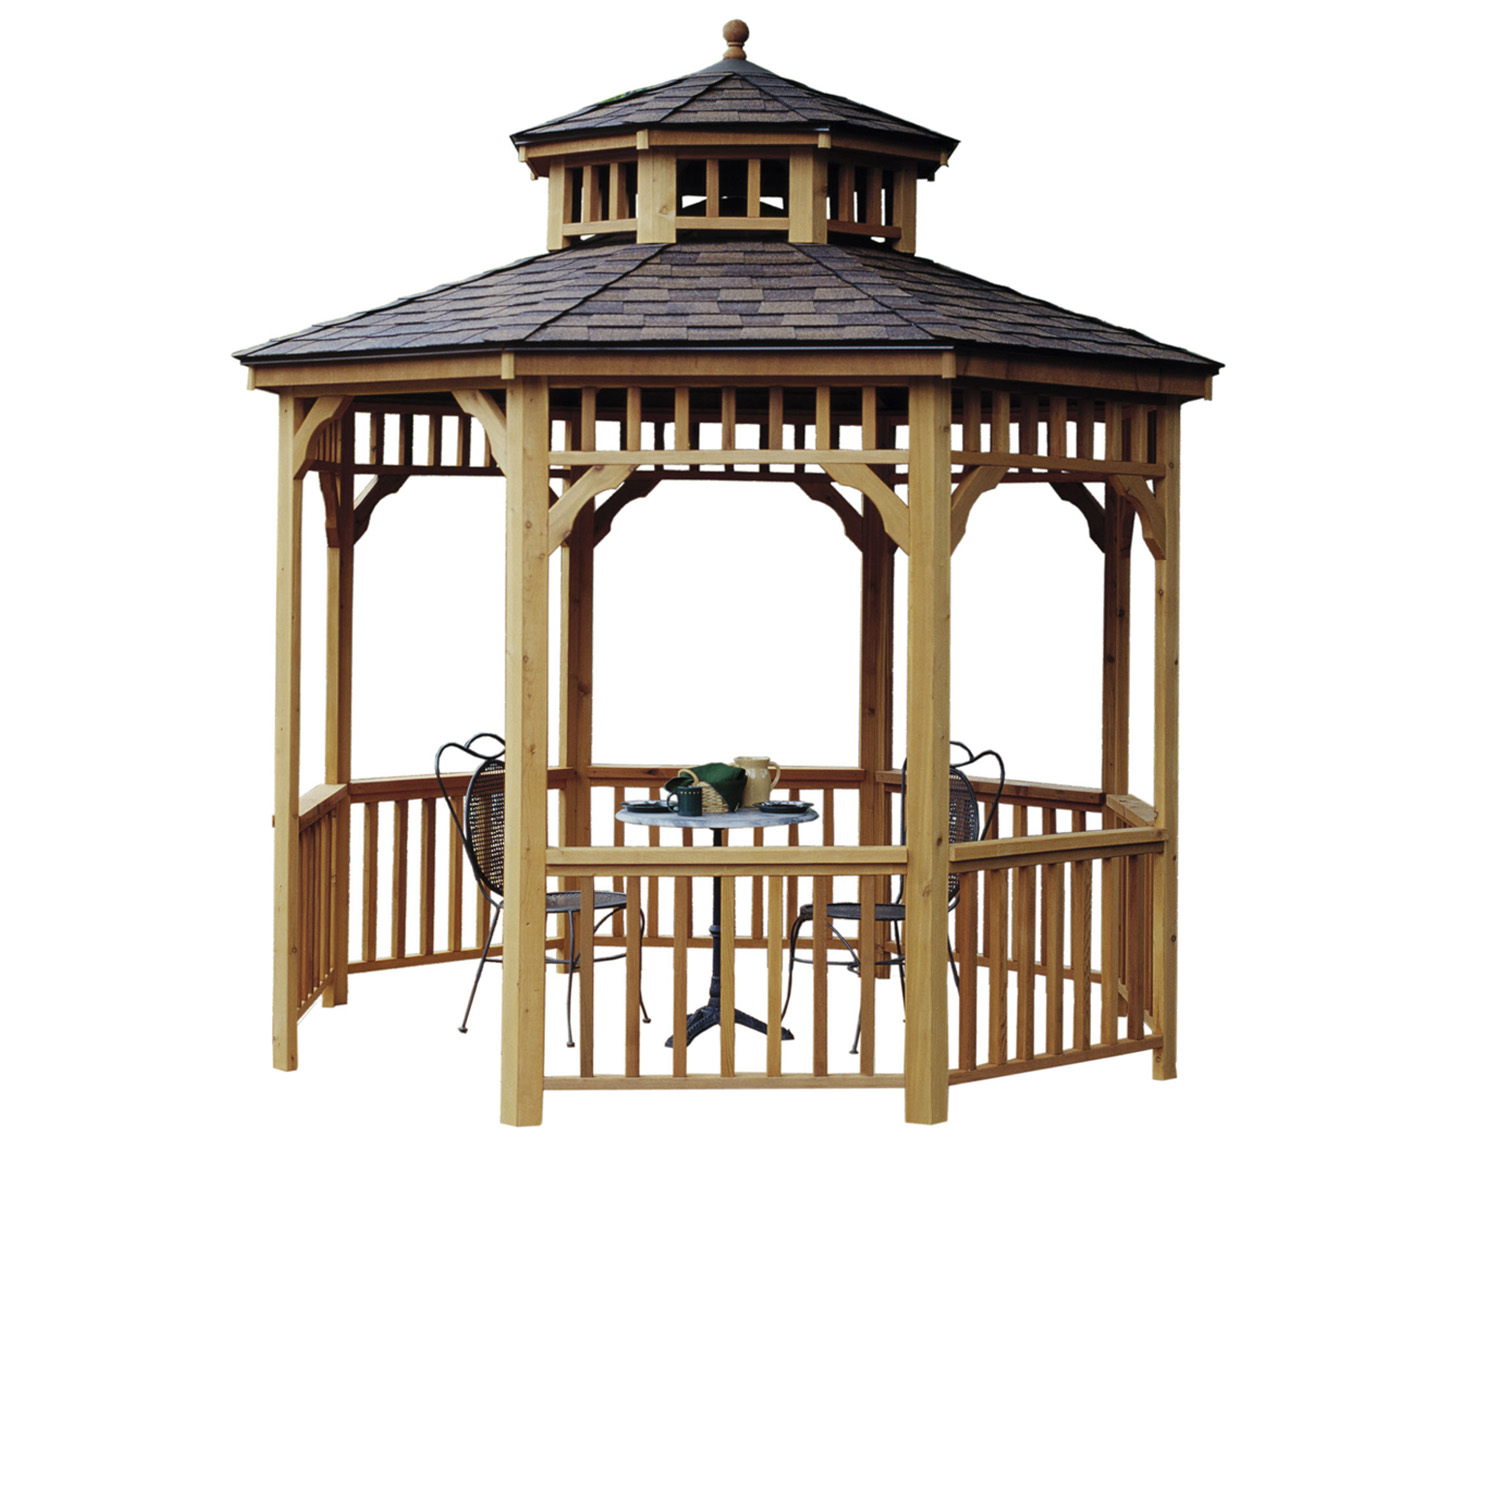 Seaside Round Gazebo 10ft 2 on swing to shed